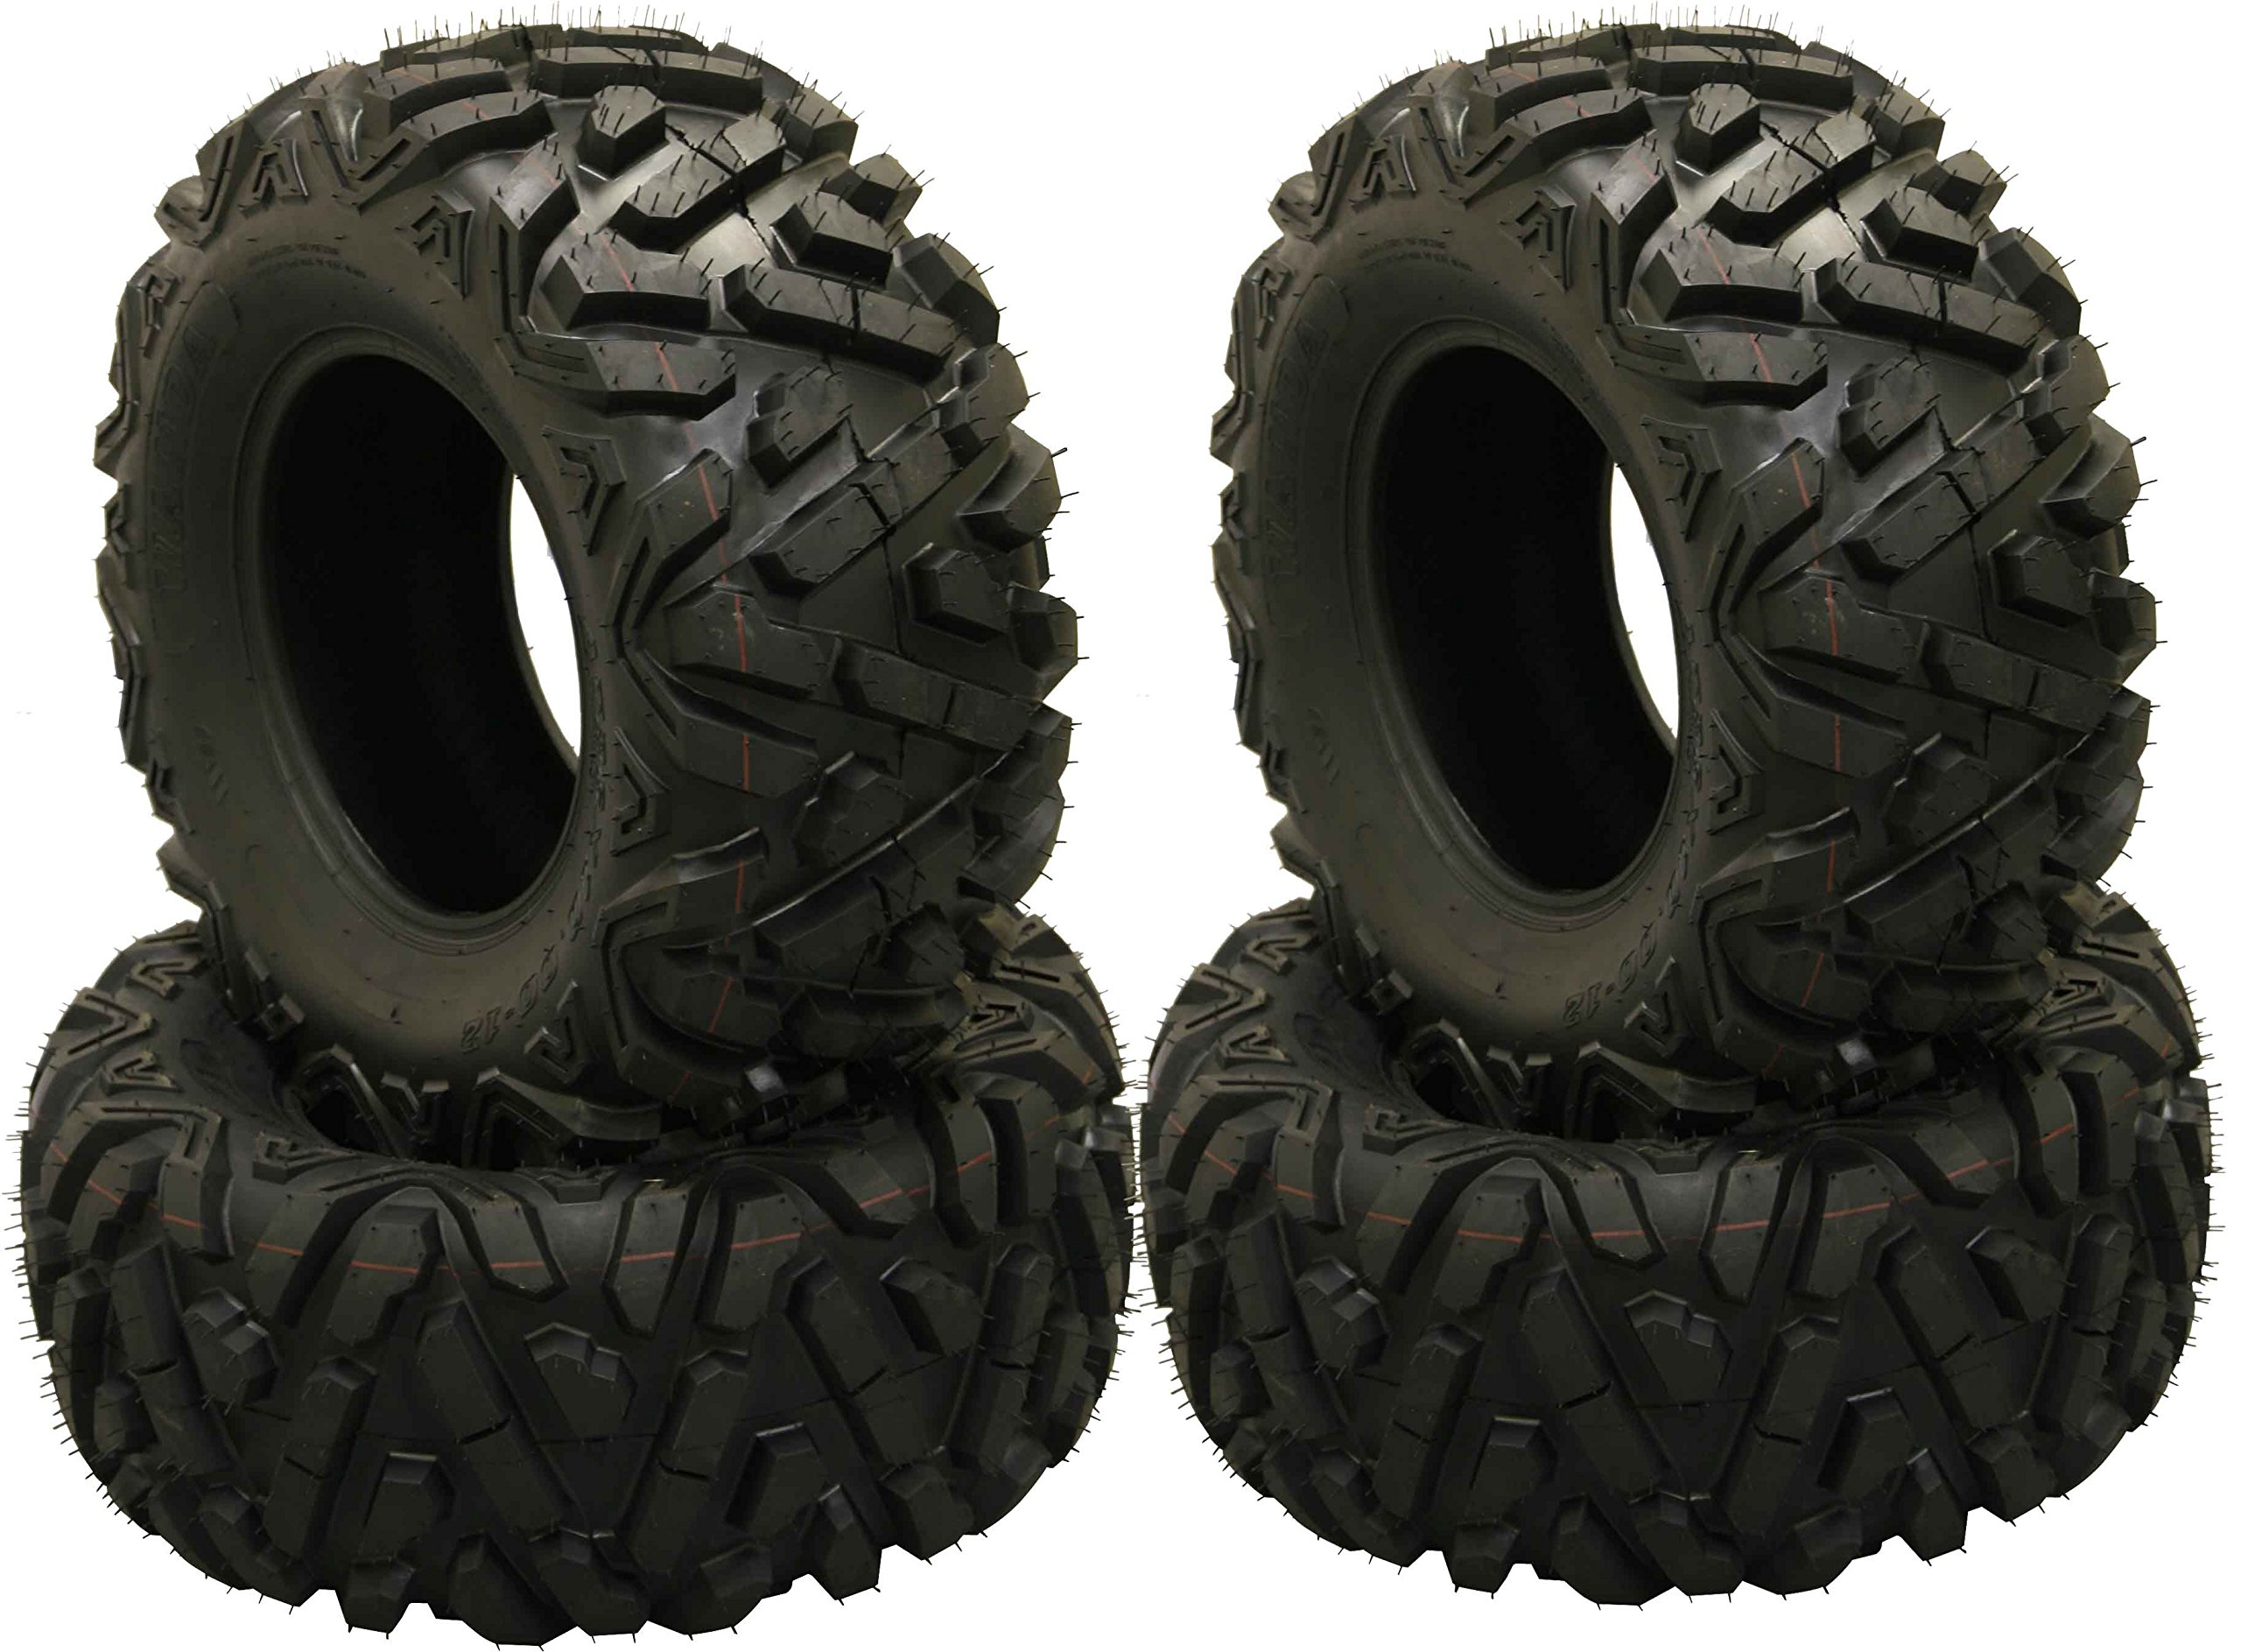 Set of 4 WANDA ATV Tires AT 27x10-12 /6PR P350 - 10170